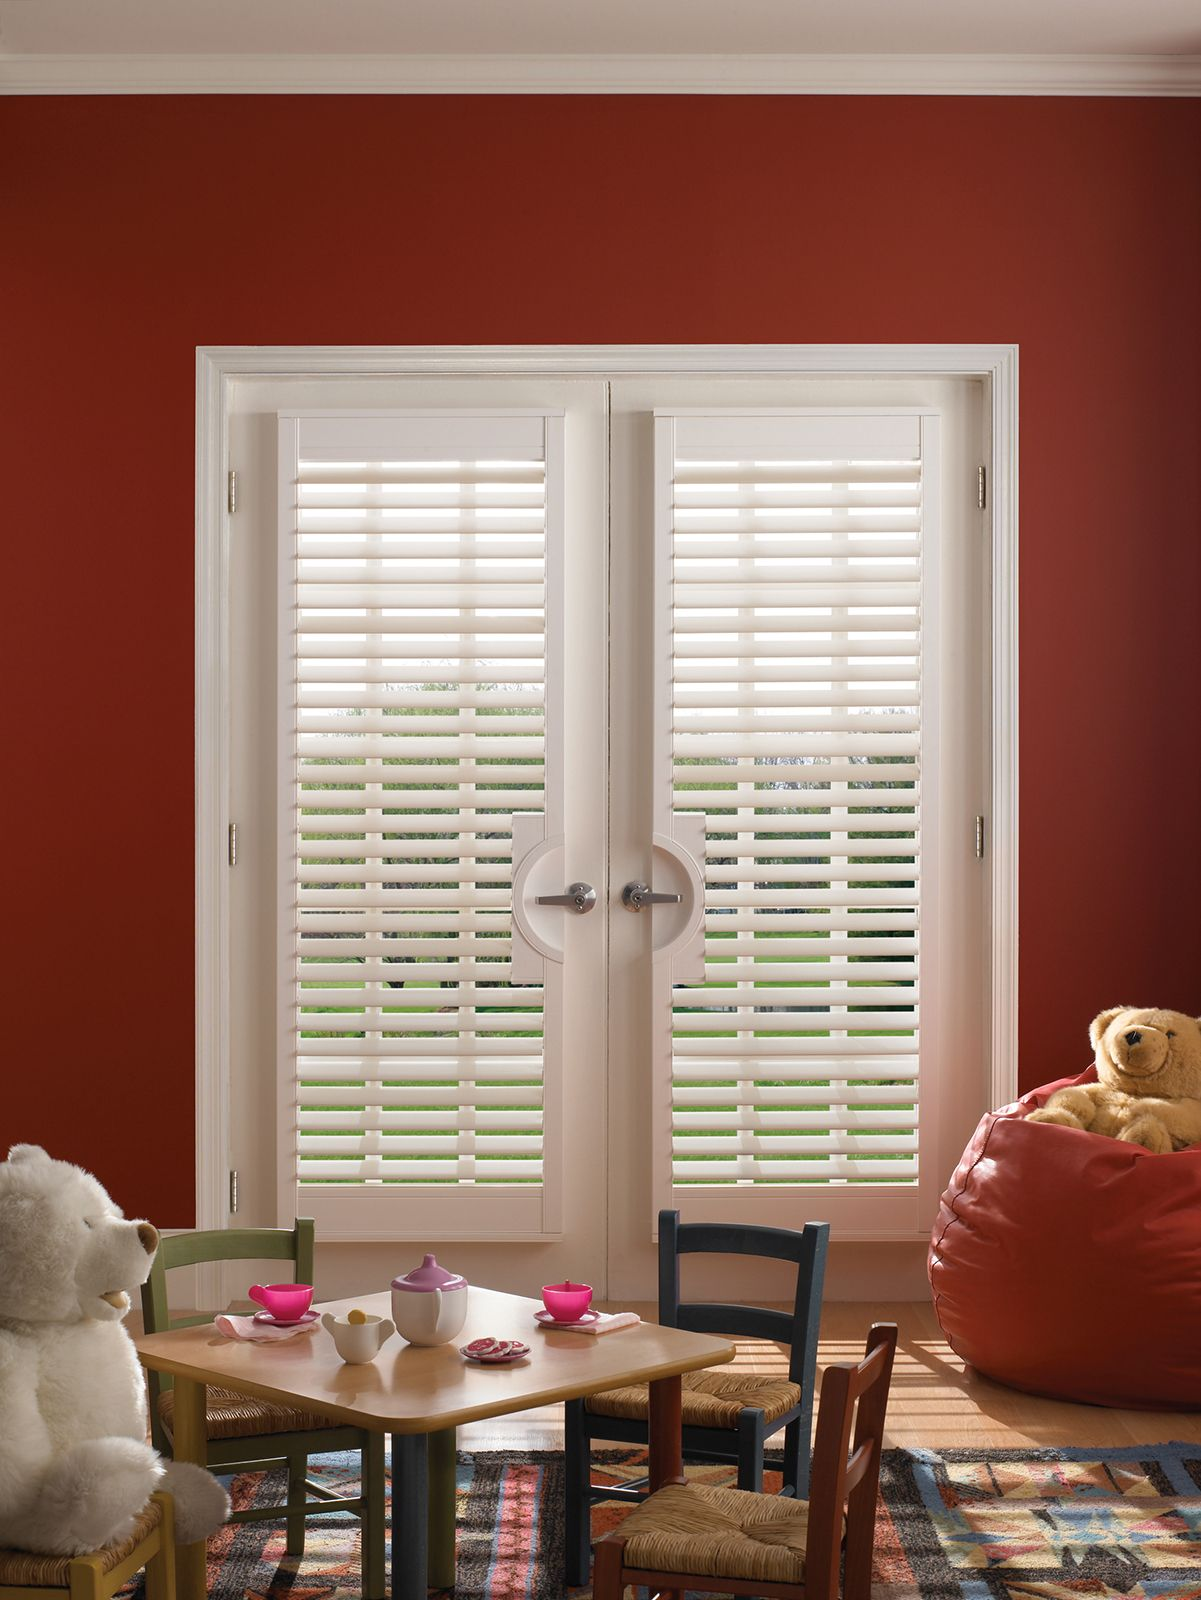 Cotton • 2½ inch louver • French Door Cut-out • UltraClearview® hidden rear tilt